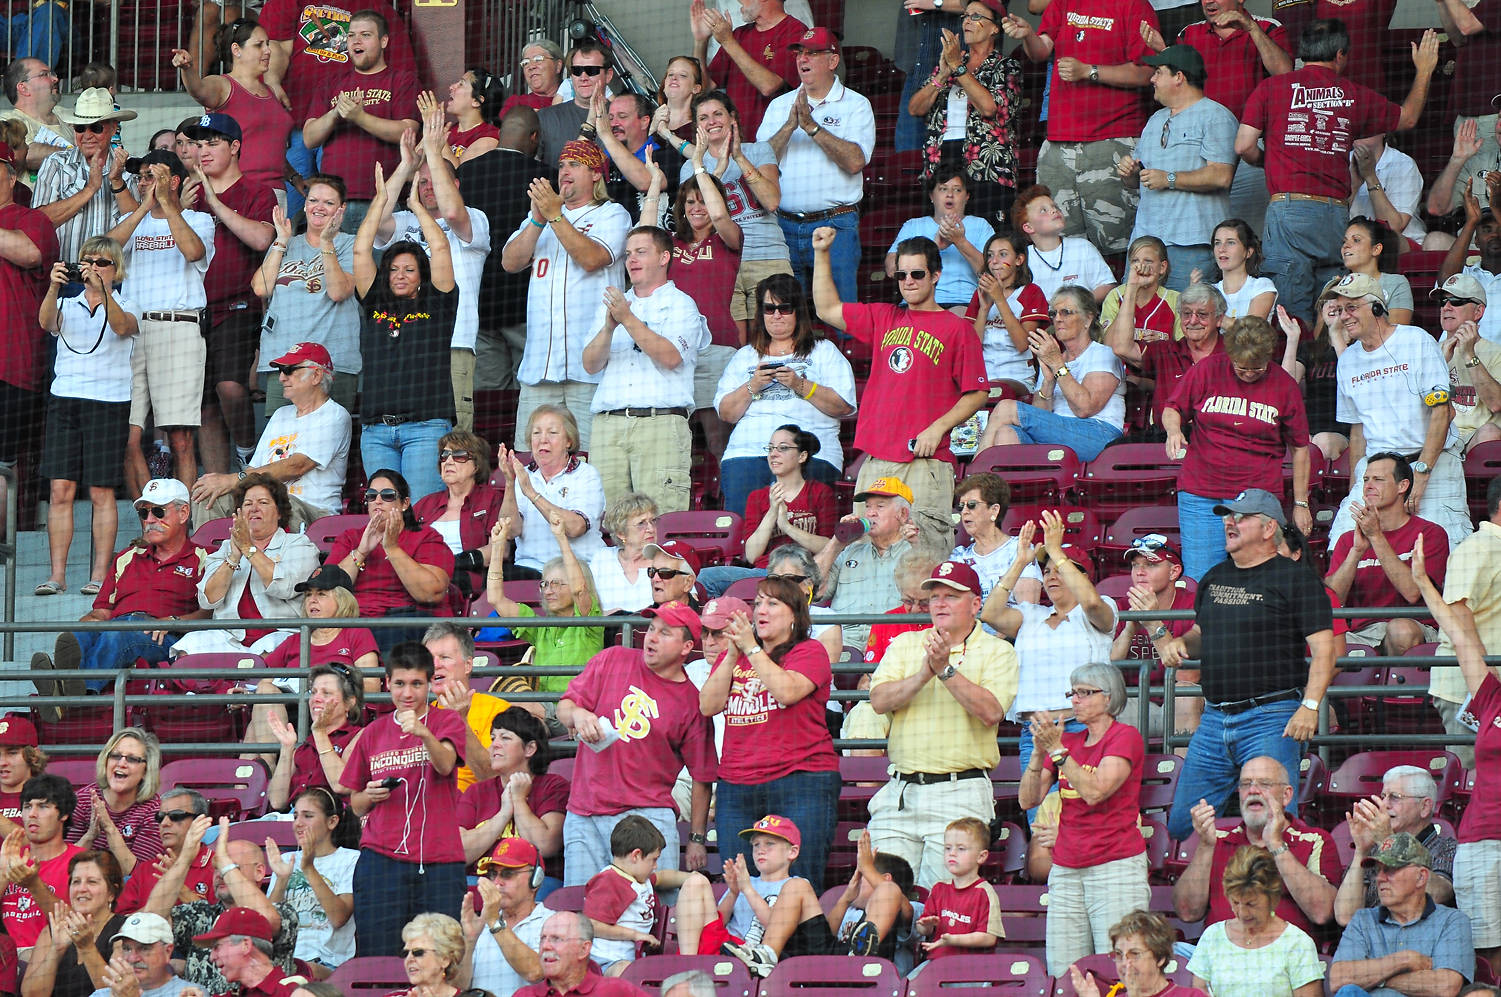 A Dick Howser Stadium crowd of 5,058 turned out Saturday to help propel the Seminoles to a 10-3 victory over Duke.